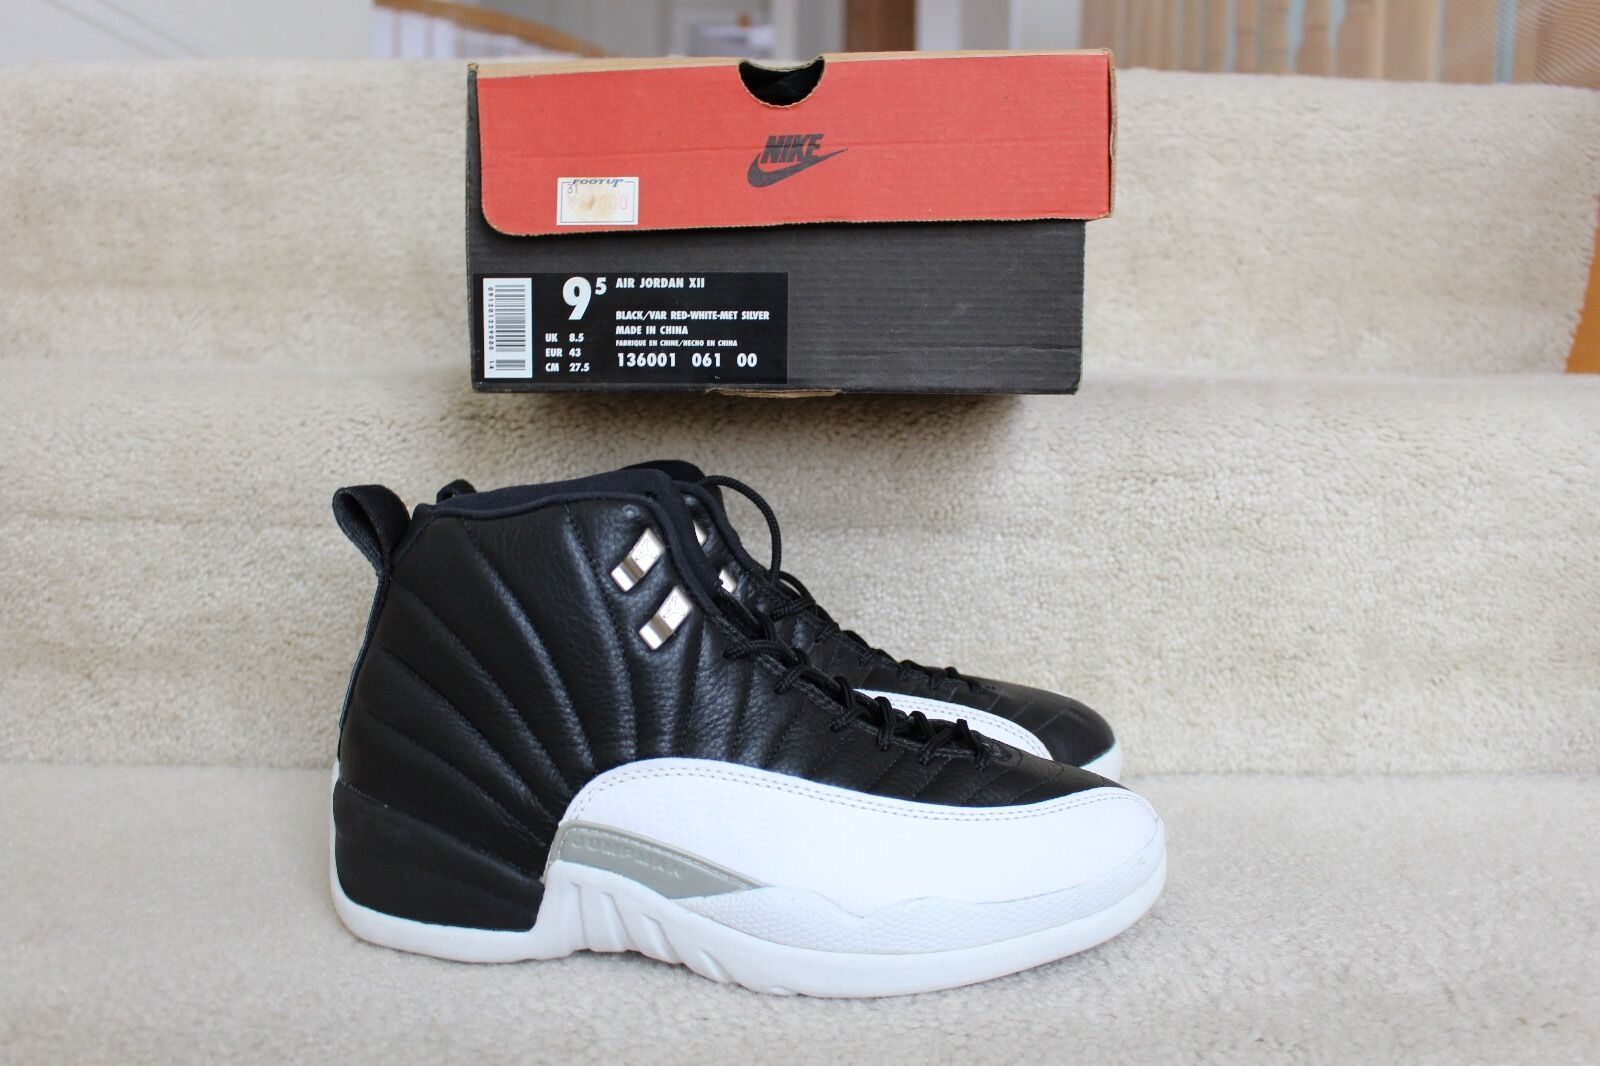 NIKE AIR JORDAN 12 XII BLACK WHITE PLAYOFFS 136001 061 MEN'S SZ 9.5 1997